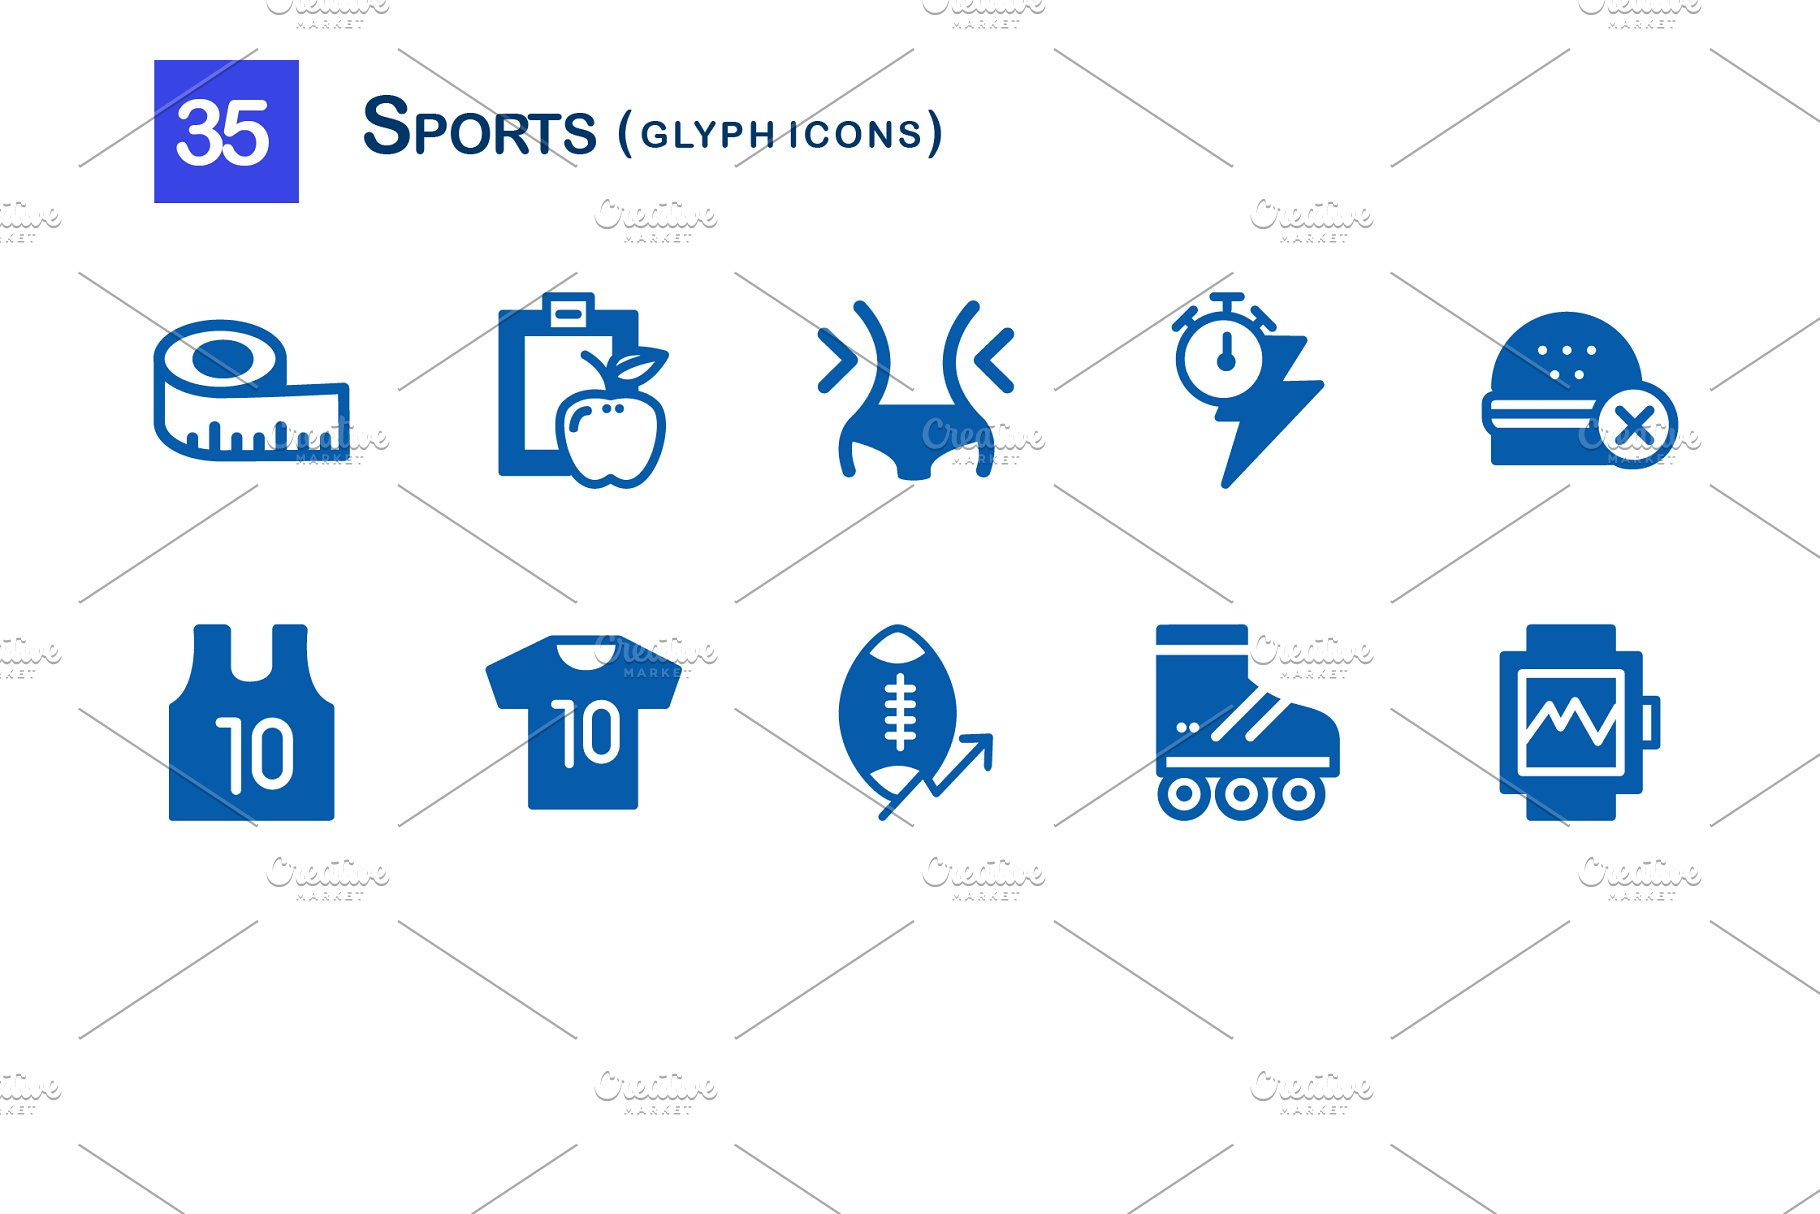 sports-glyph-icons-preview-slide-2-